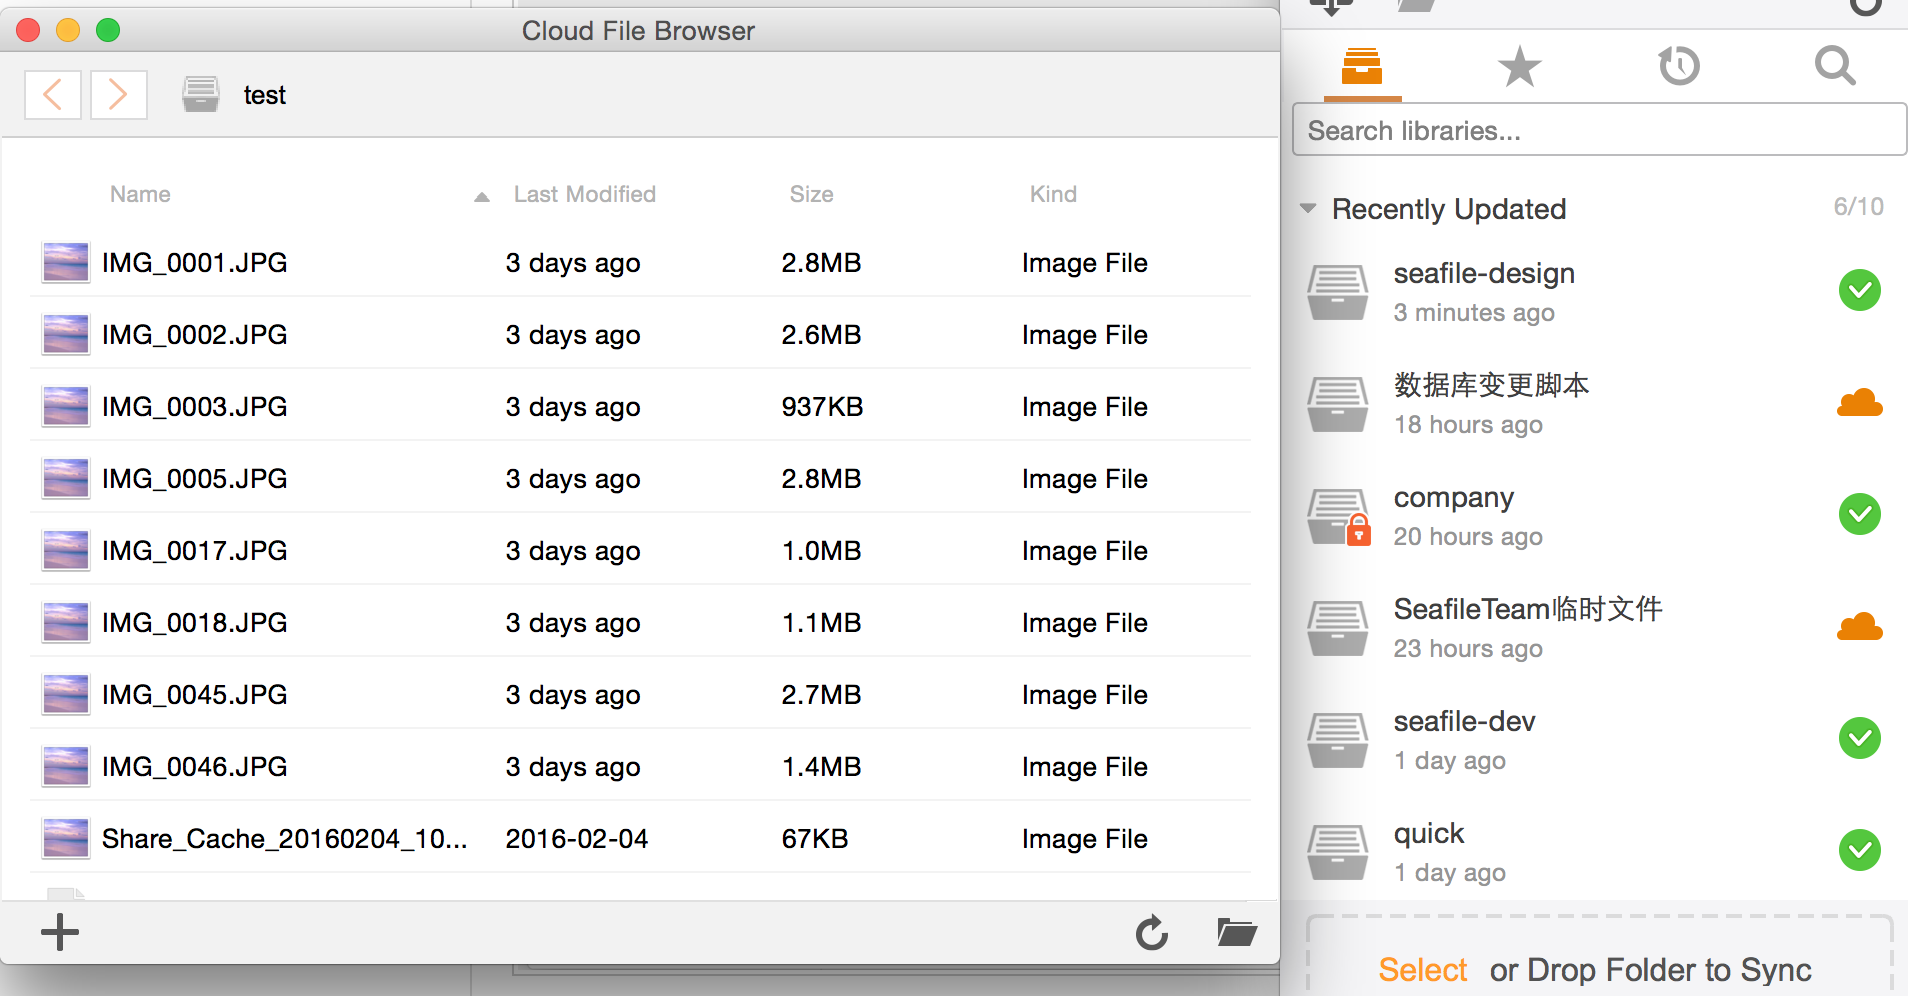 seafile-cloud-file-browser.png